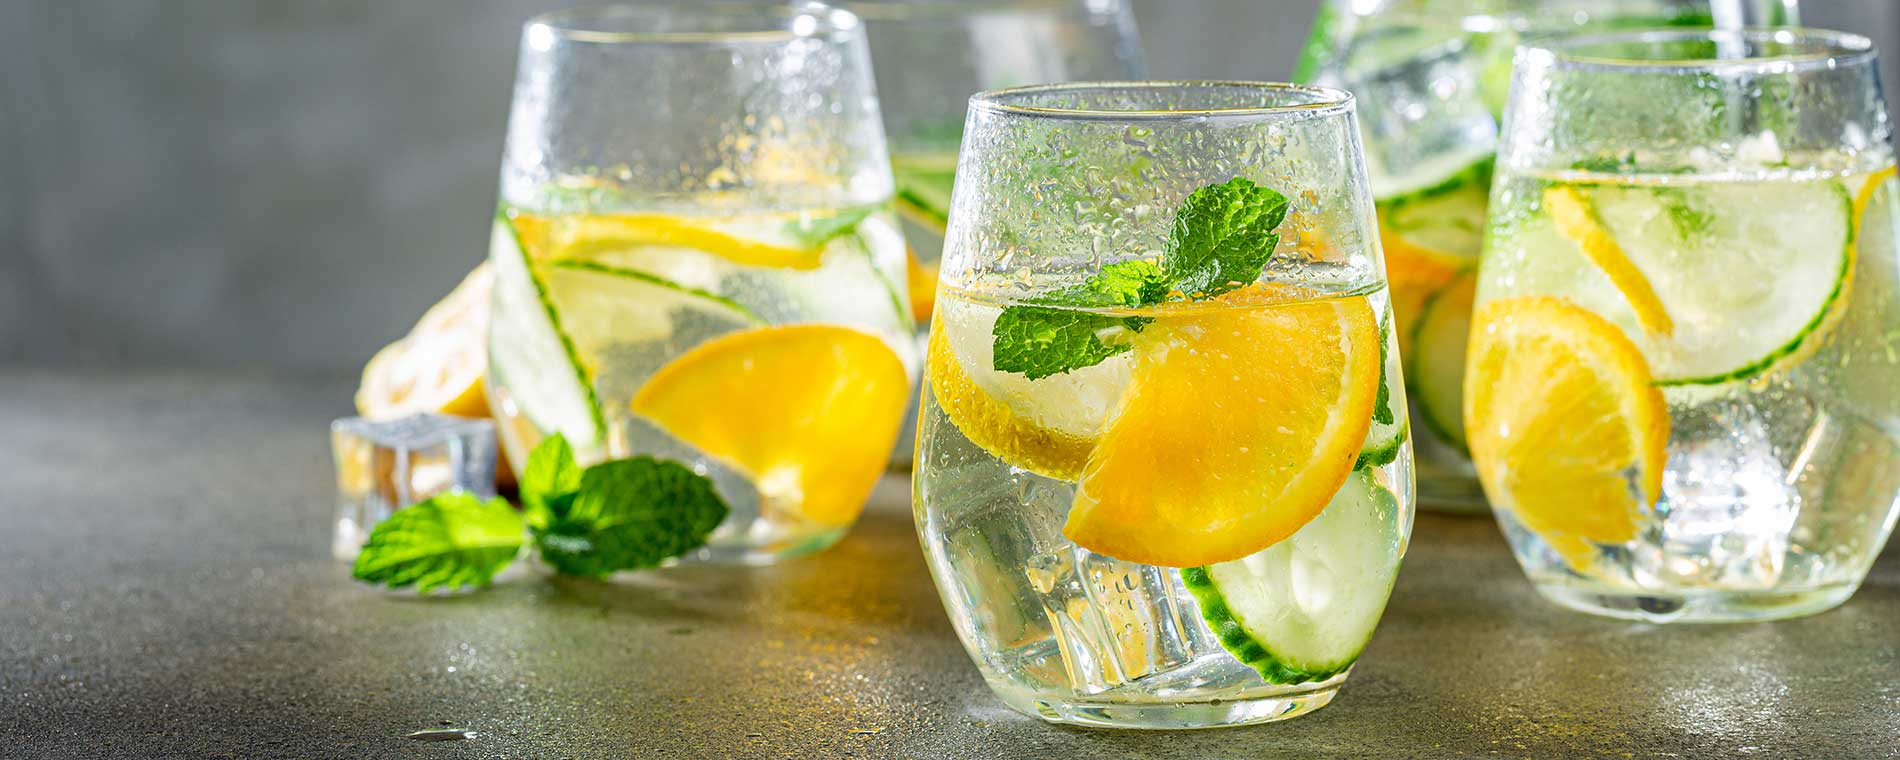 Staying-hydrated-is-beneficial-to-your-health